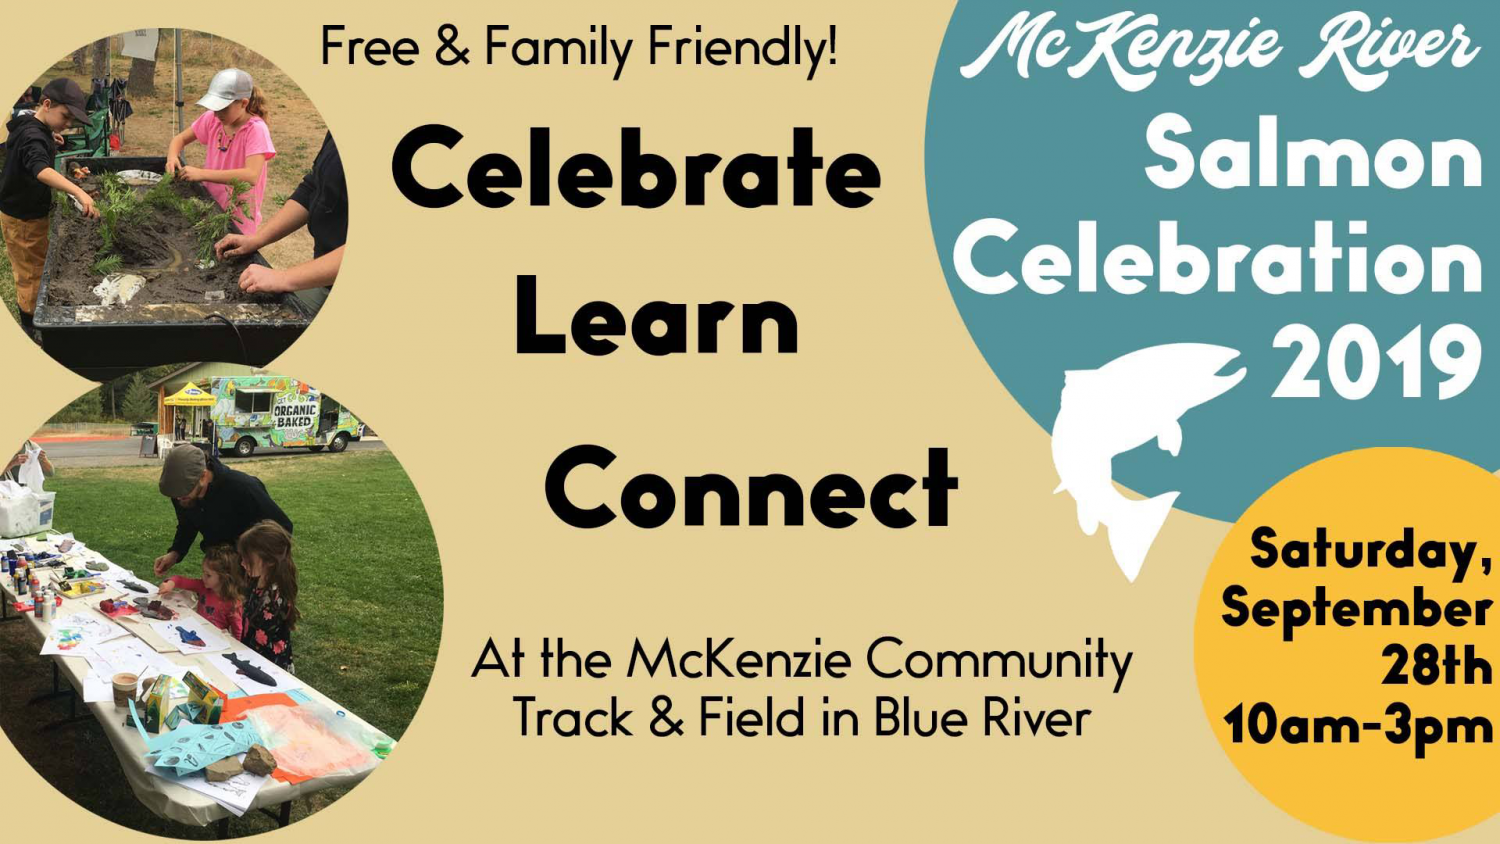 McKenzie River Salmon Celebration 2019 - Saturday, September 28th: 10am-3pm